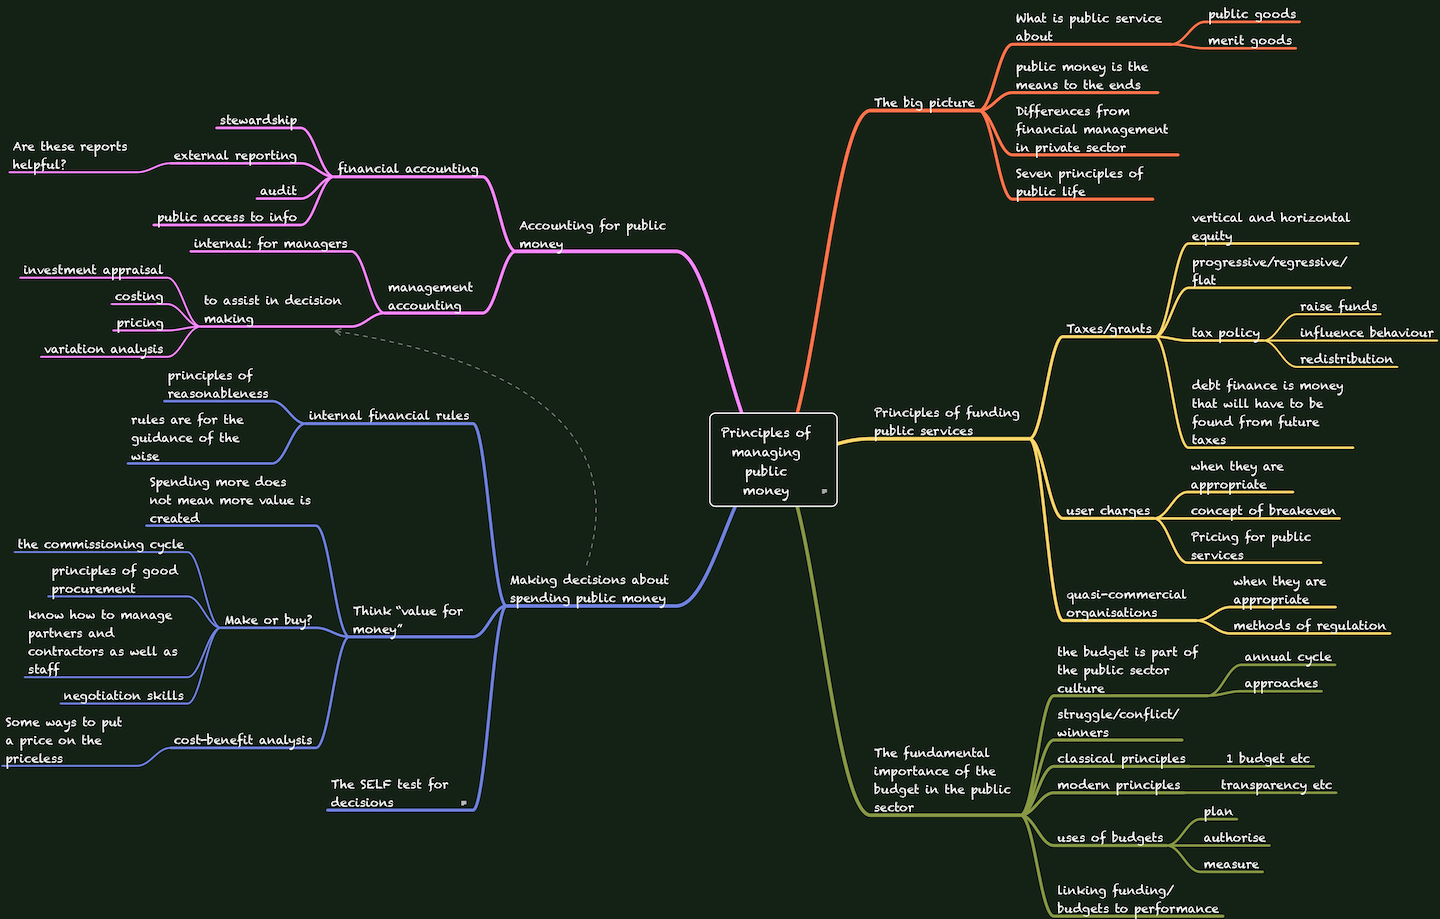 Mindmap of contents of principles of managing public money course